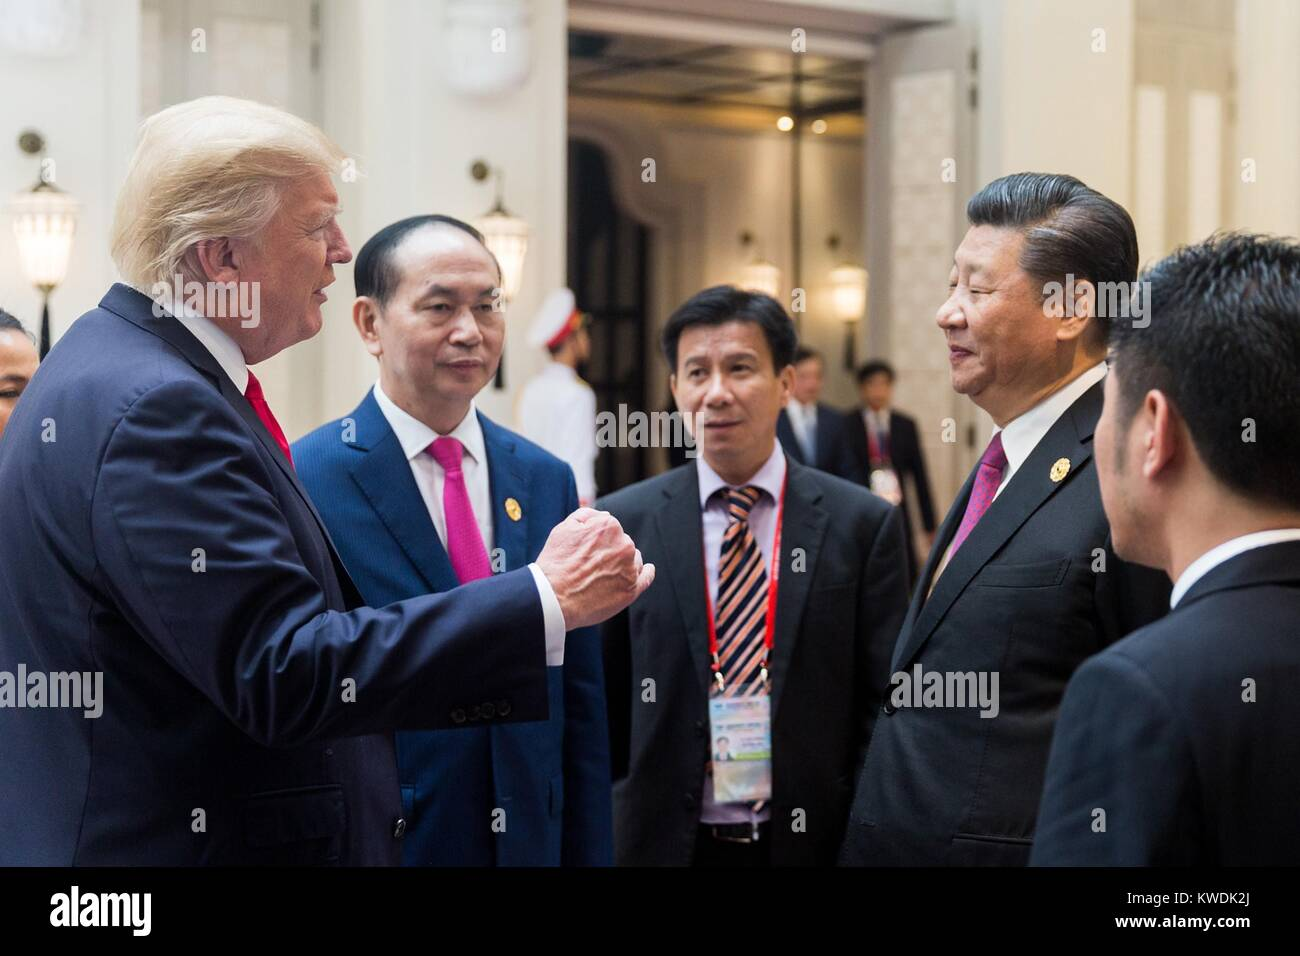 Chinese President Xi Jinping and US President Donald Trump at the APEC meeting in Danang, Vietnam. Sept. 11, 2017 - Stock Image